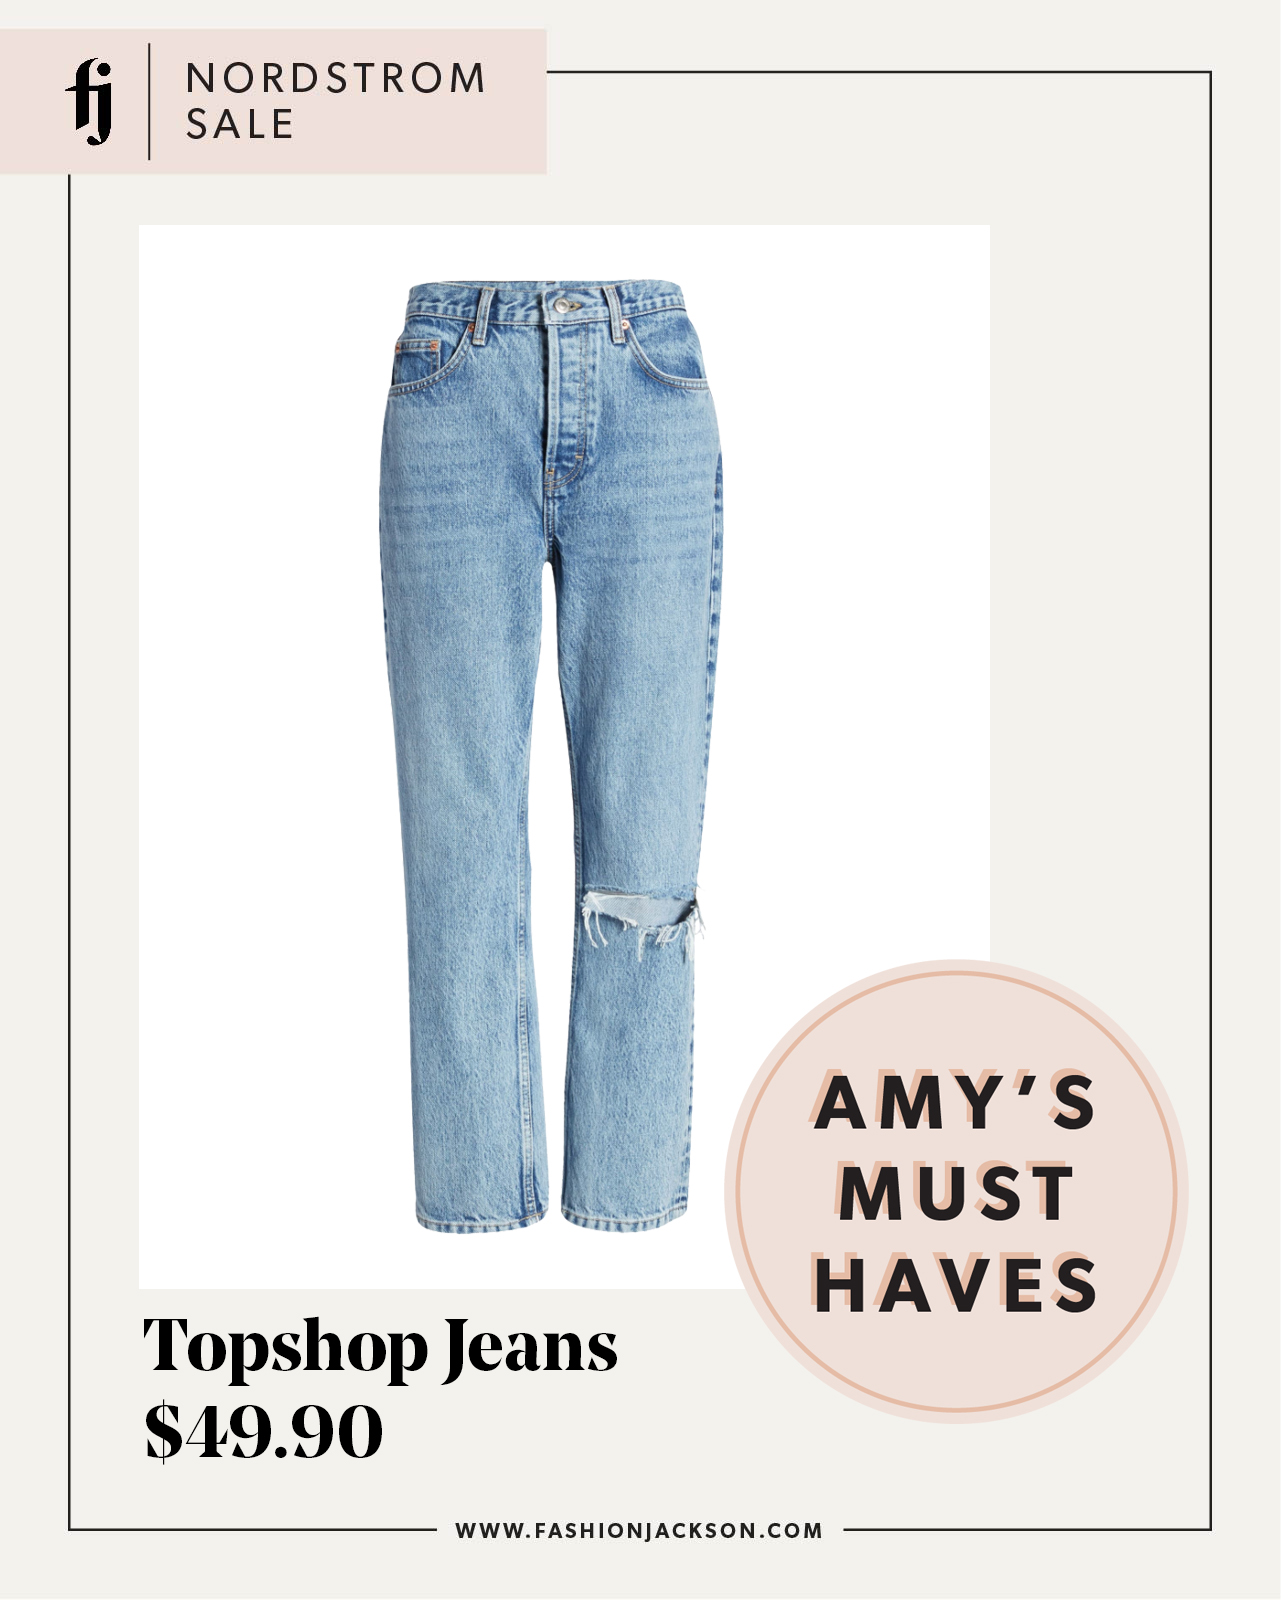 fashion jackson nordstrom anniversary sale topshop jeans